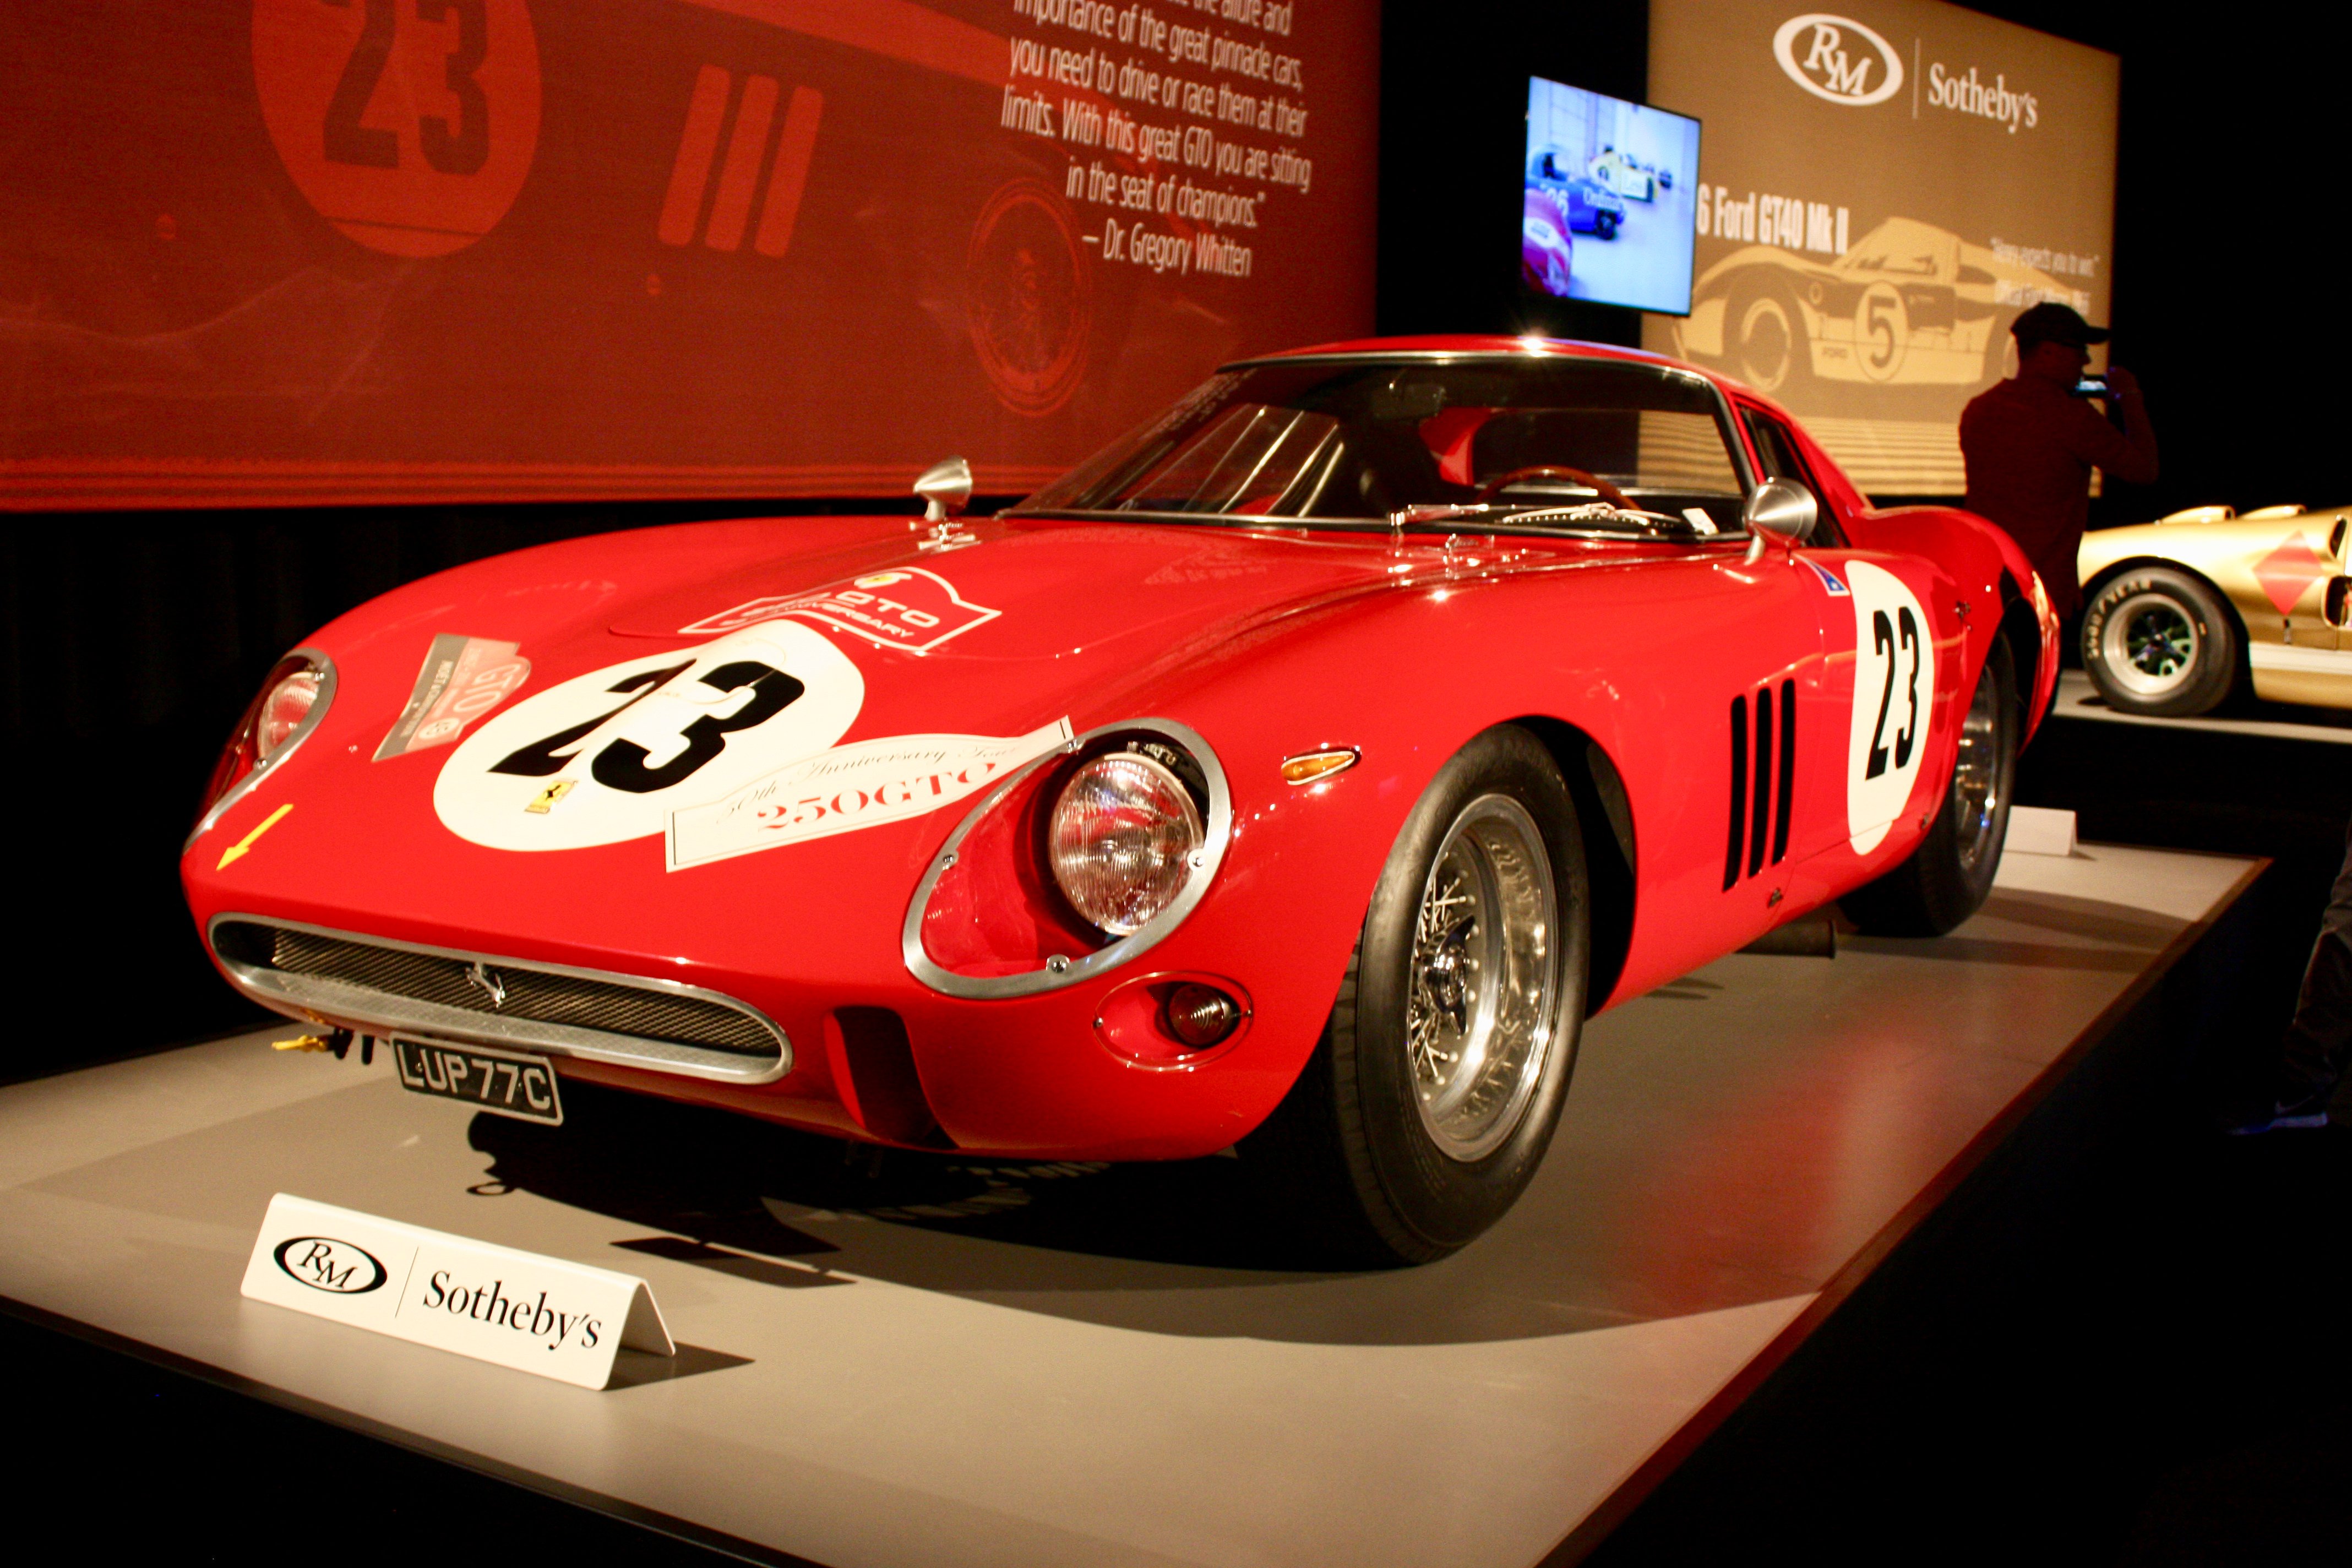 1962 Ferrari 250 Gto Becomes The Most Expensive Car Ever